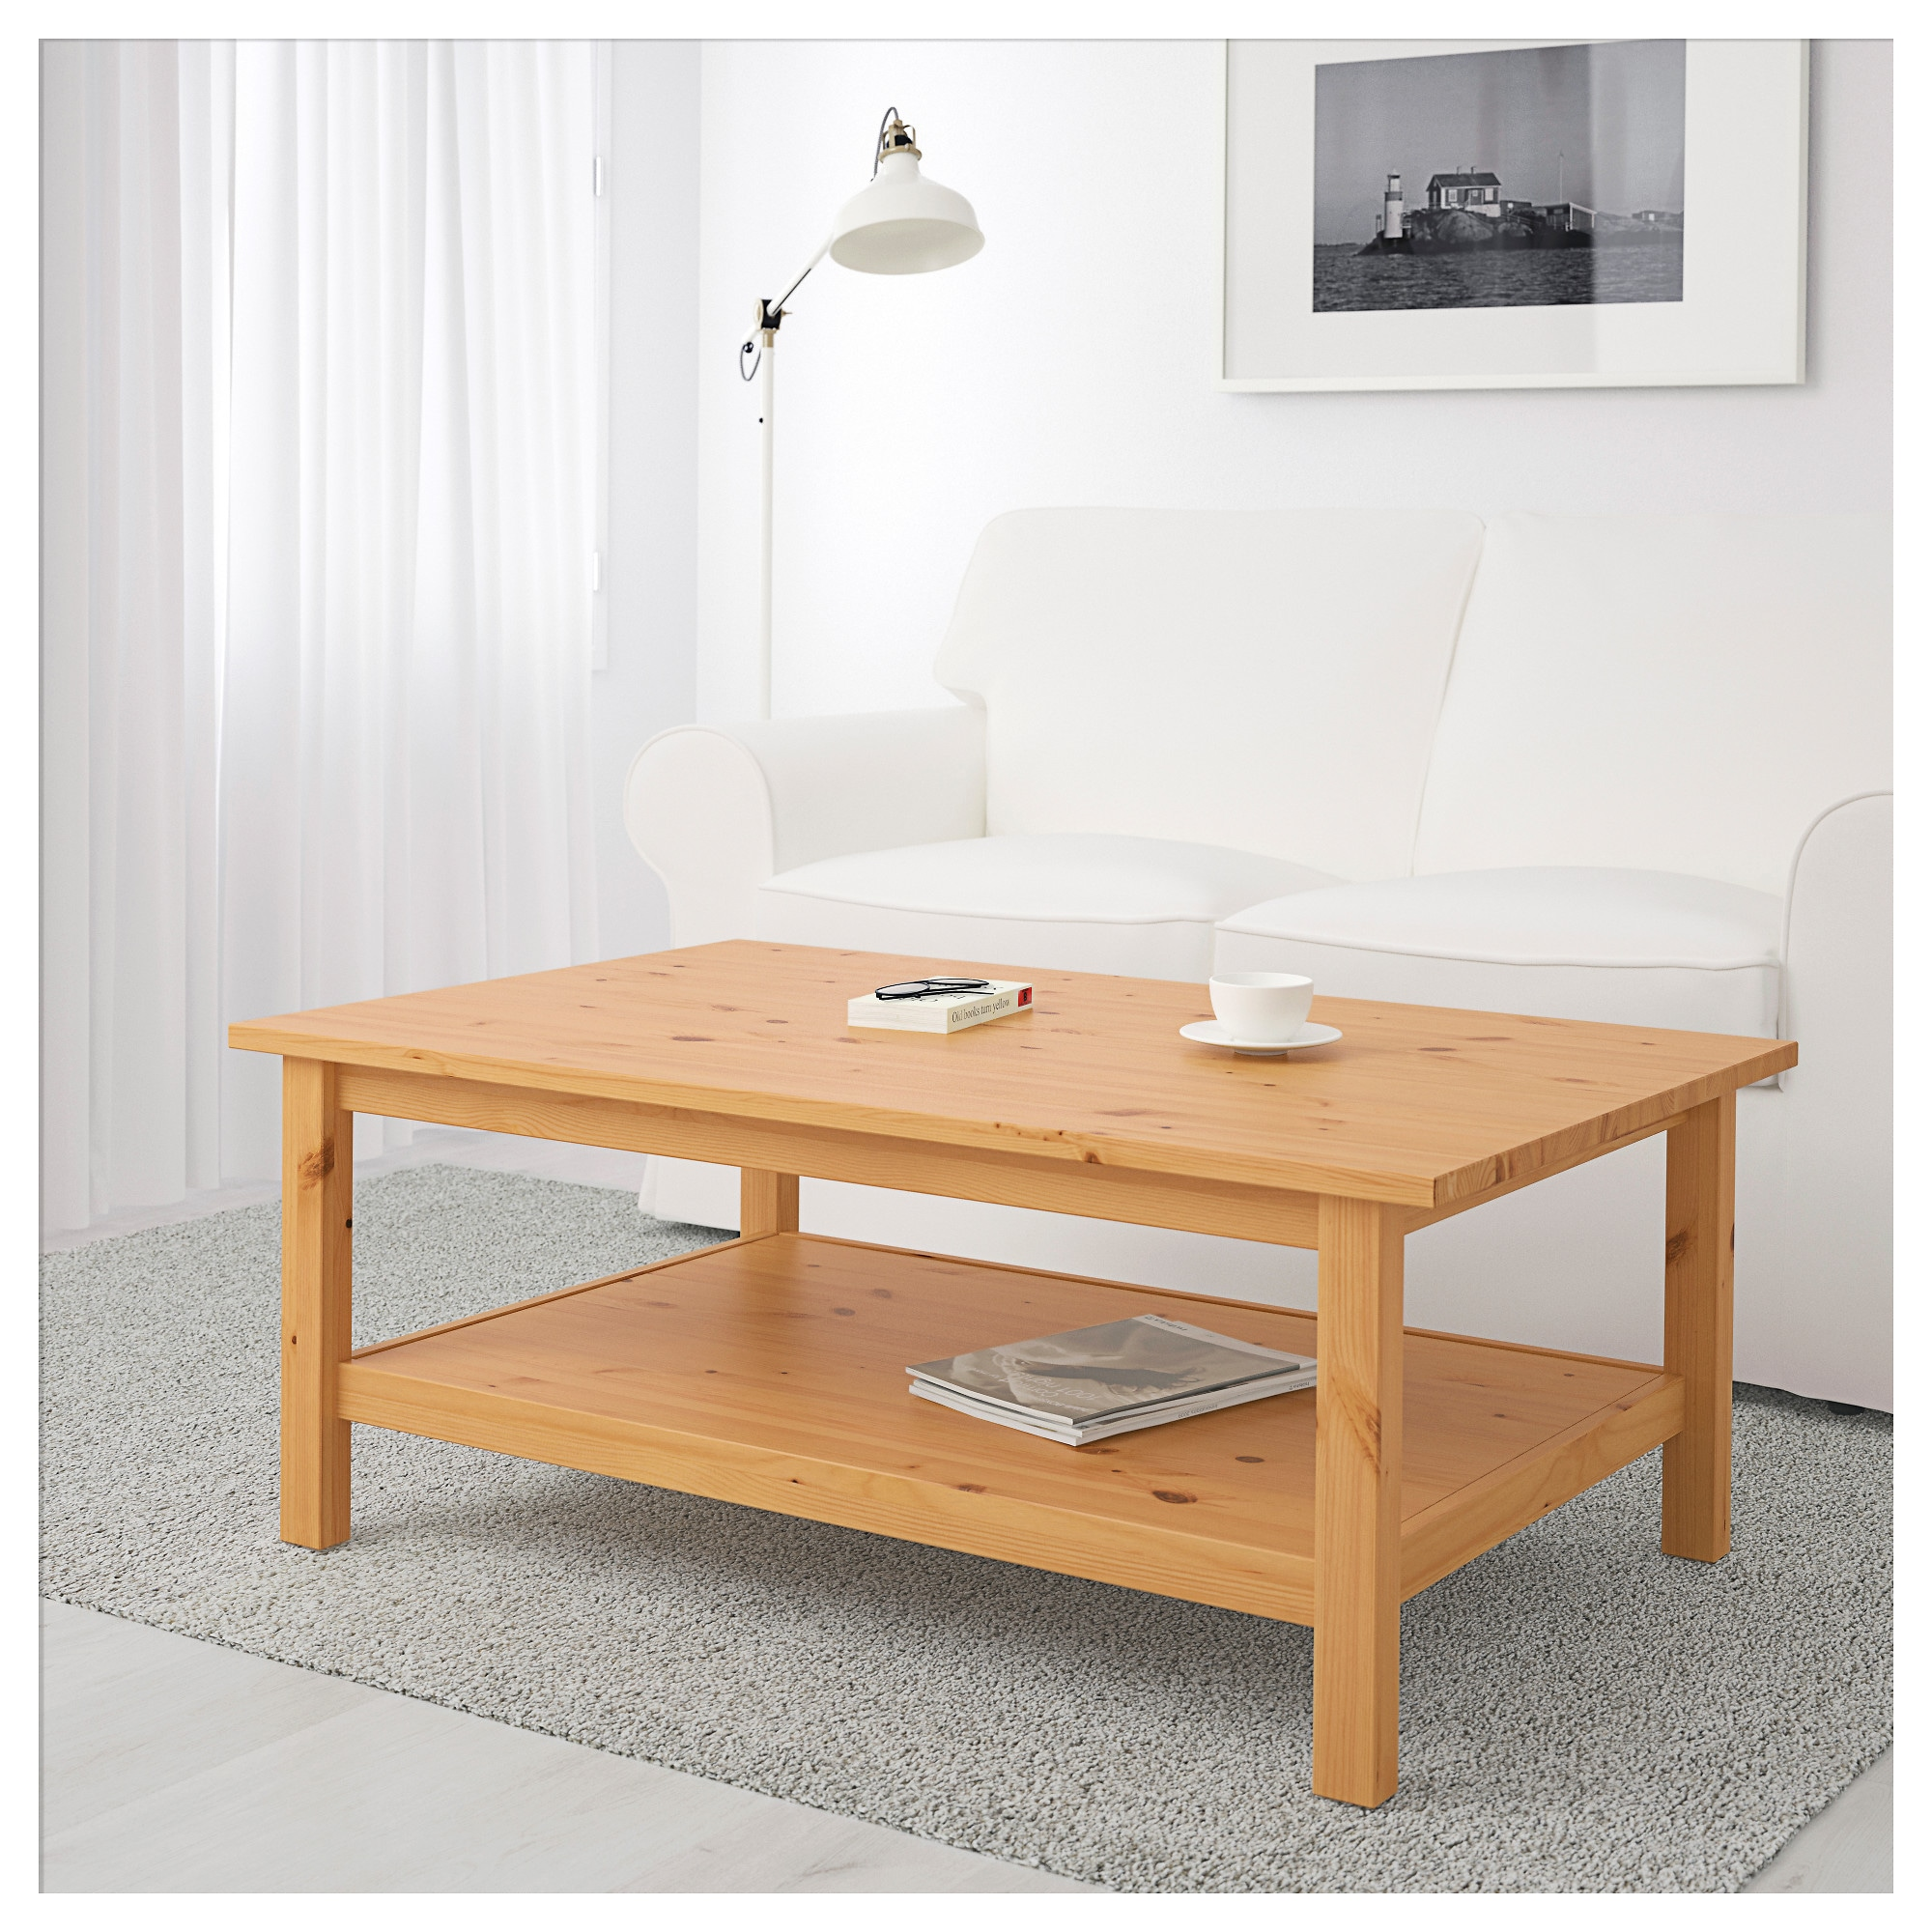 HEMNES Coffee table light brown IKEA